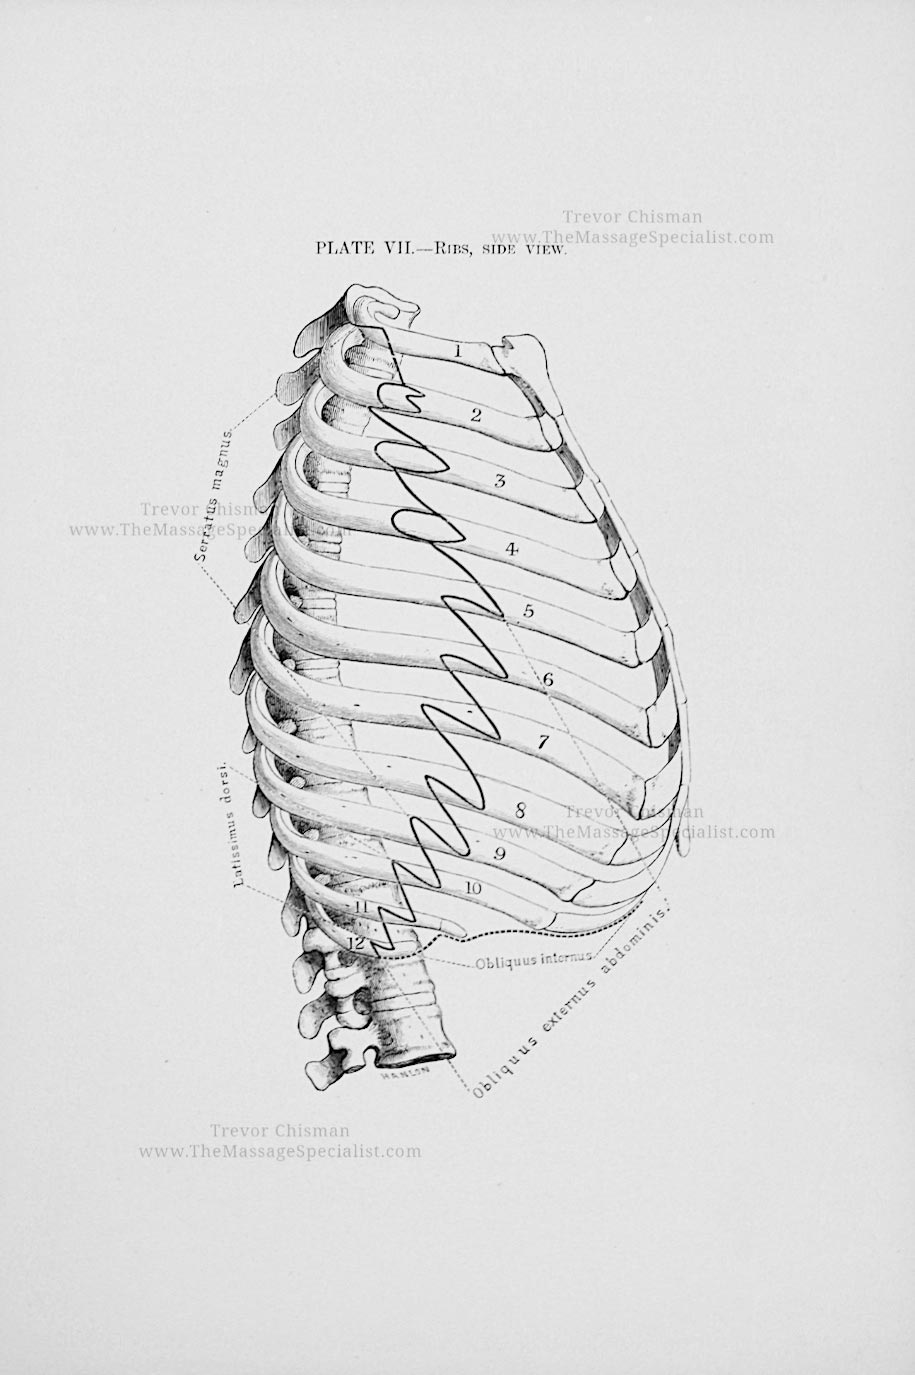 Artistic Anatomy Plate 7